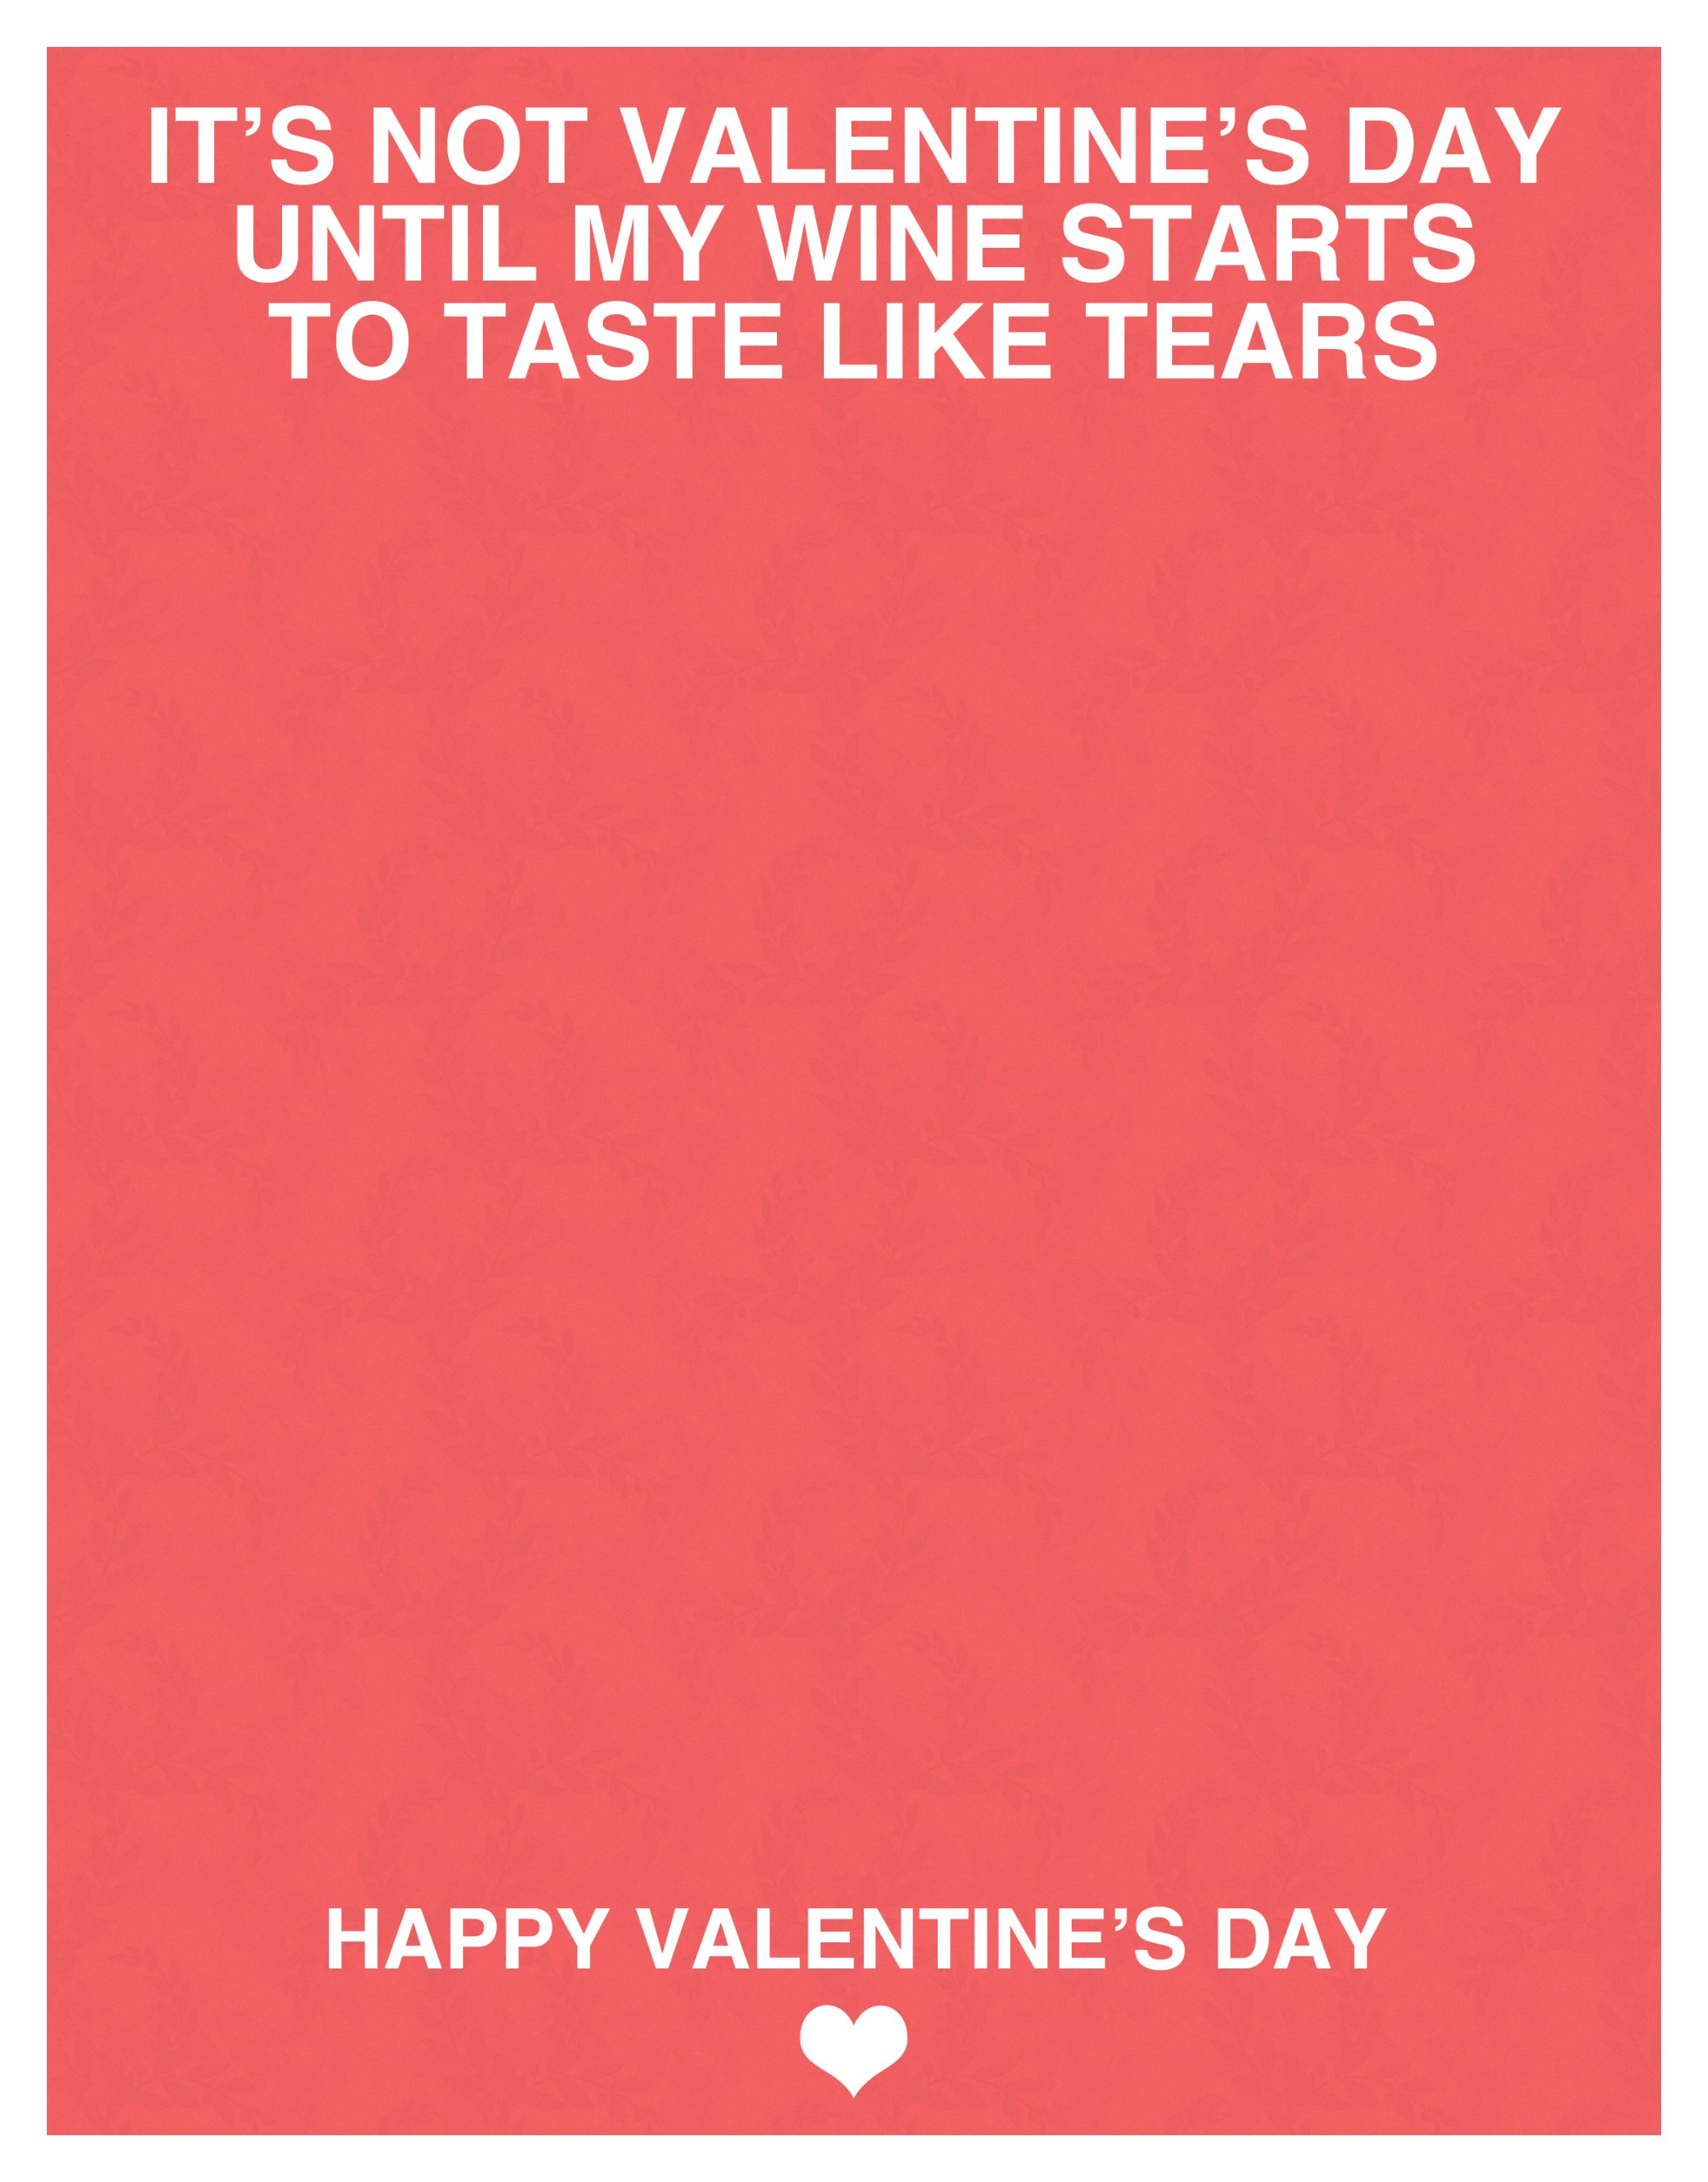 valentine's day cards for wine lovers